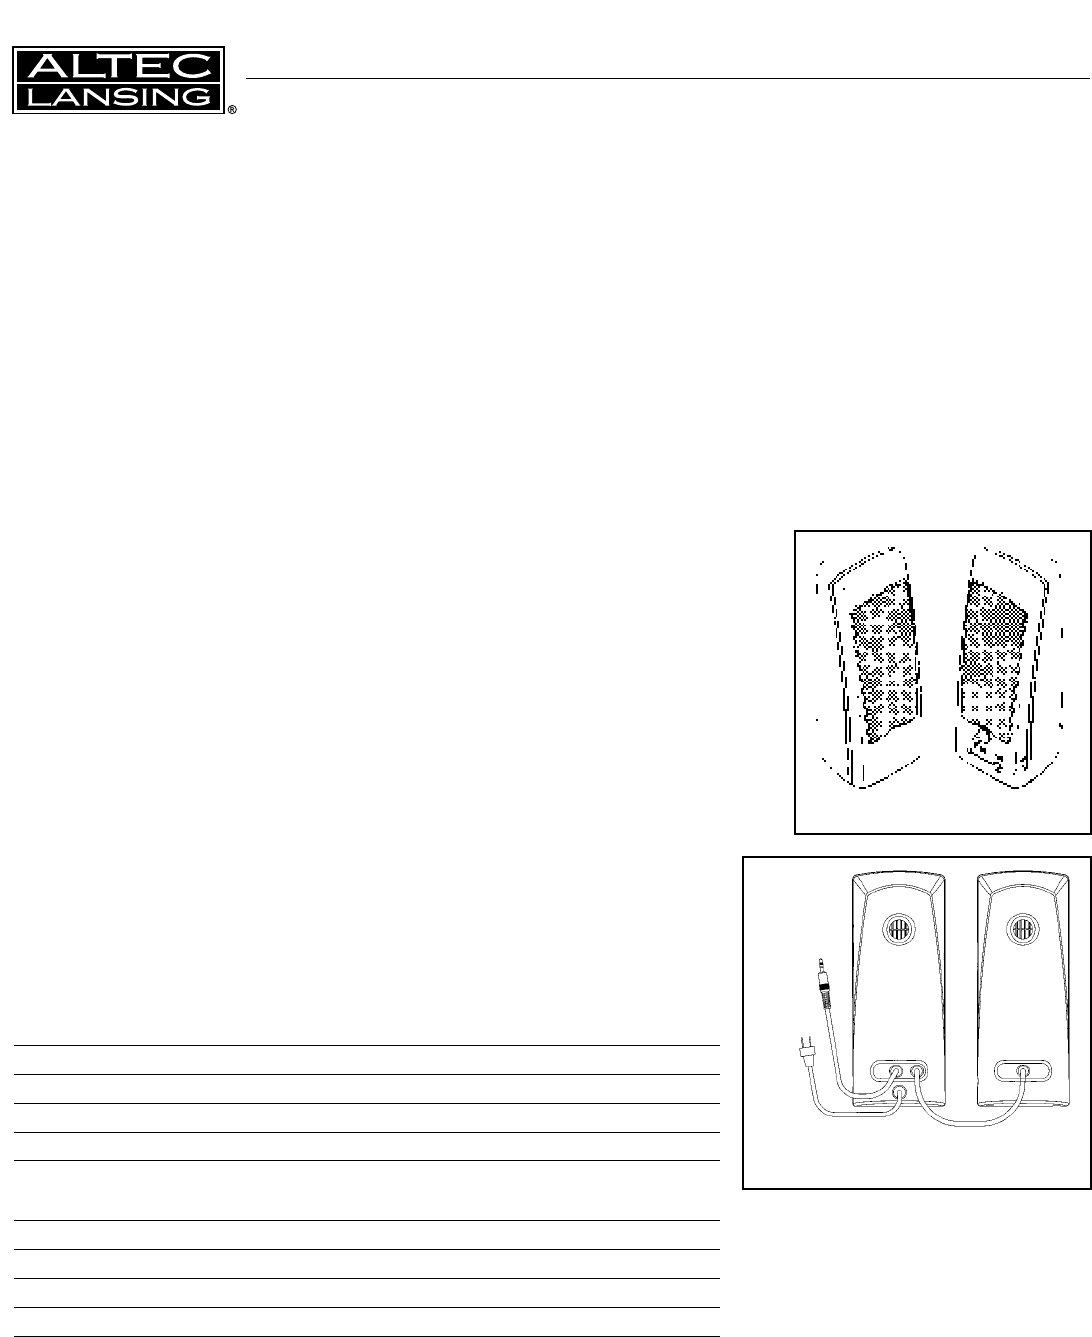 5456a24e 9e09 4139 8138 2e29b89b4c3c bg1 altec lansing speaker system acs21w user guide manualsonline com Altec Bucket Wiring-Diagram at eliteediting.co